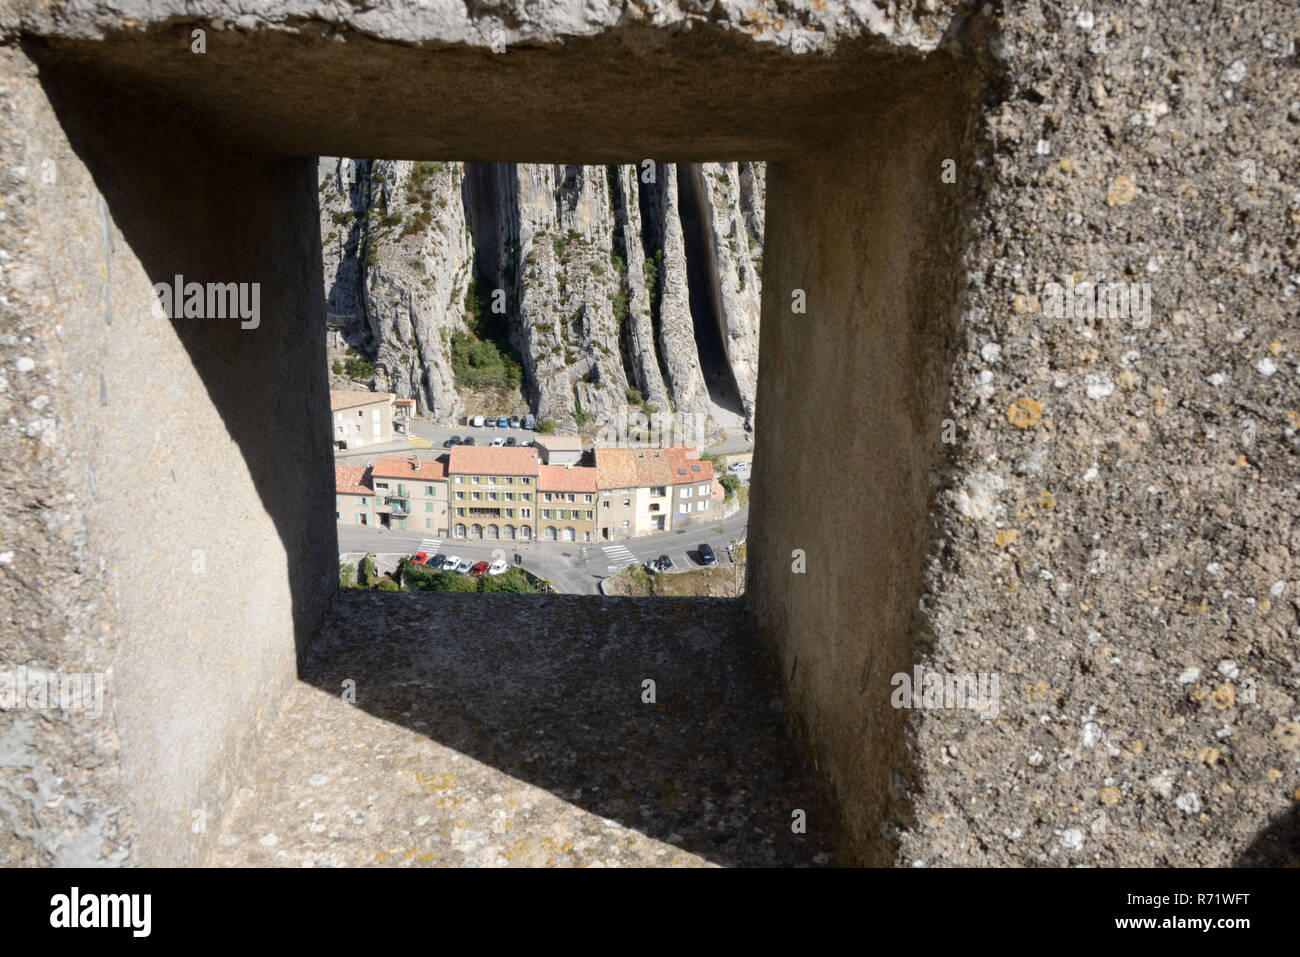 View over La Baume Rock Strata Formation from the Devil's Sentry-Box or Turret of the Citadel, Fort, Castle or Fortress Sisteron Provence France Stock Photo